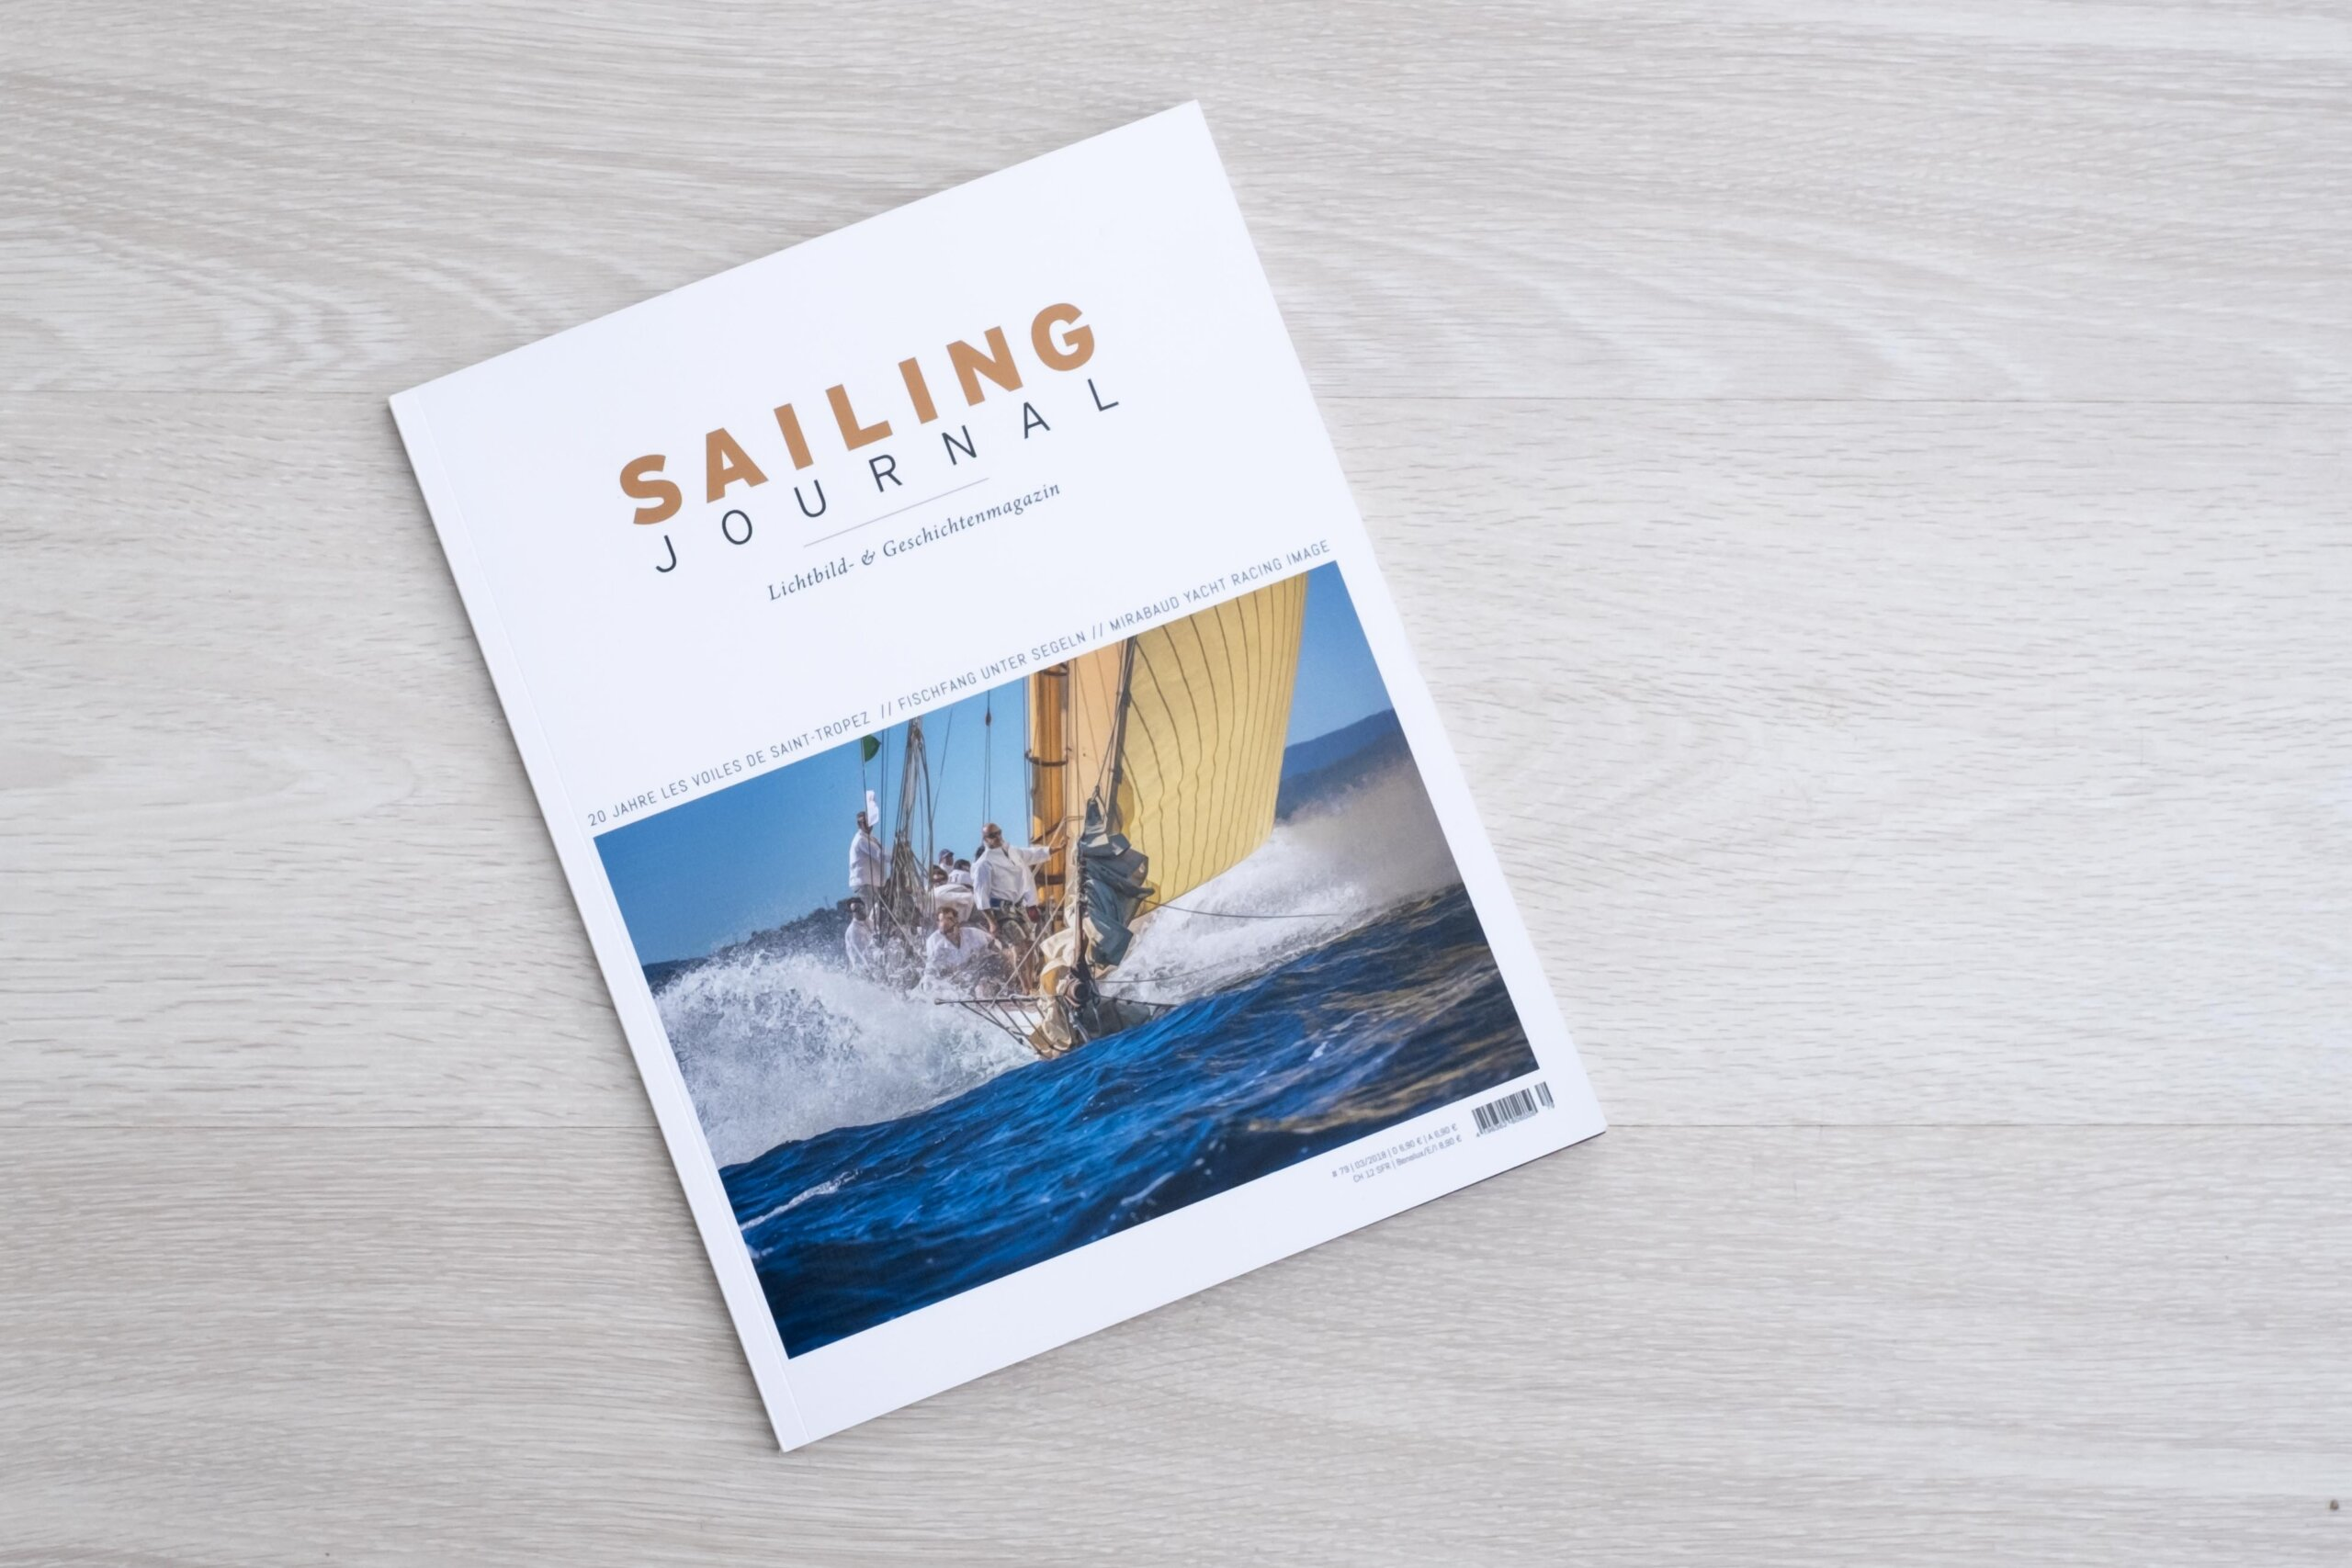 Sailing Journal